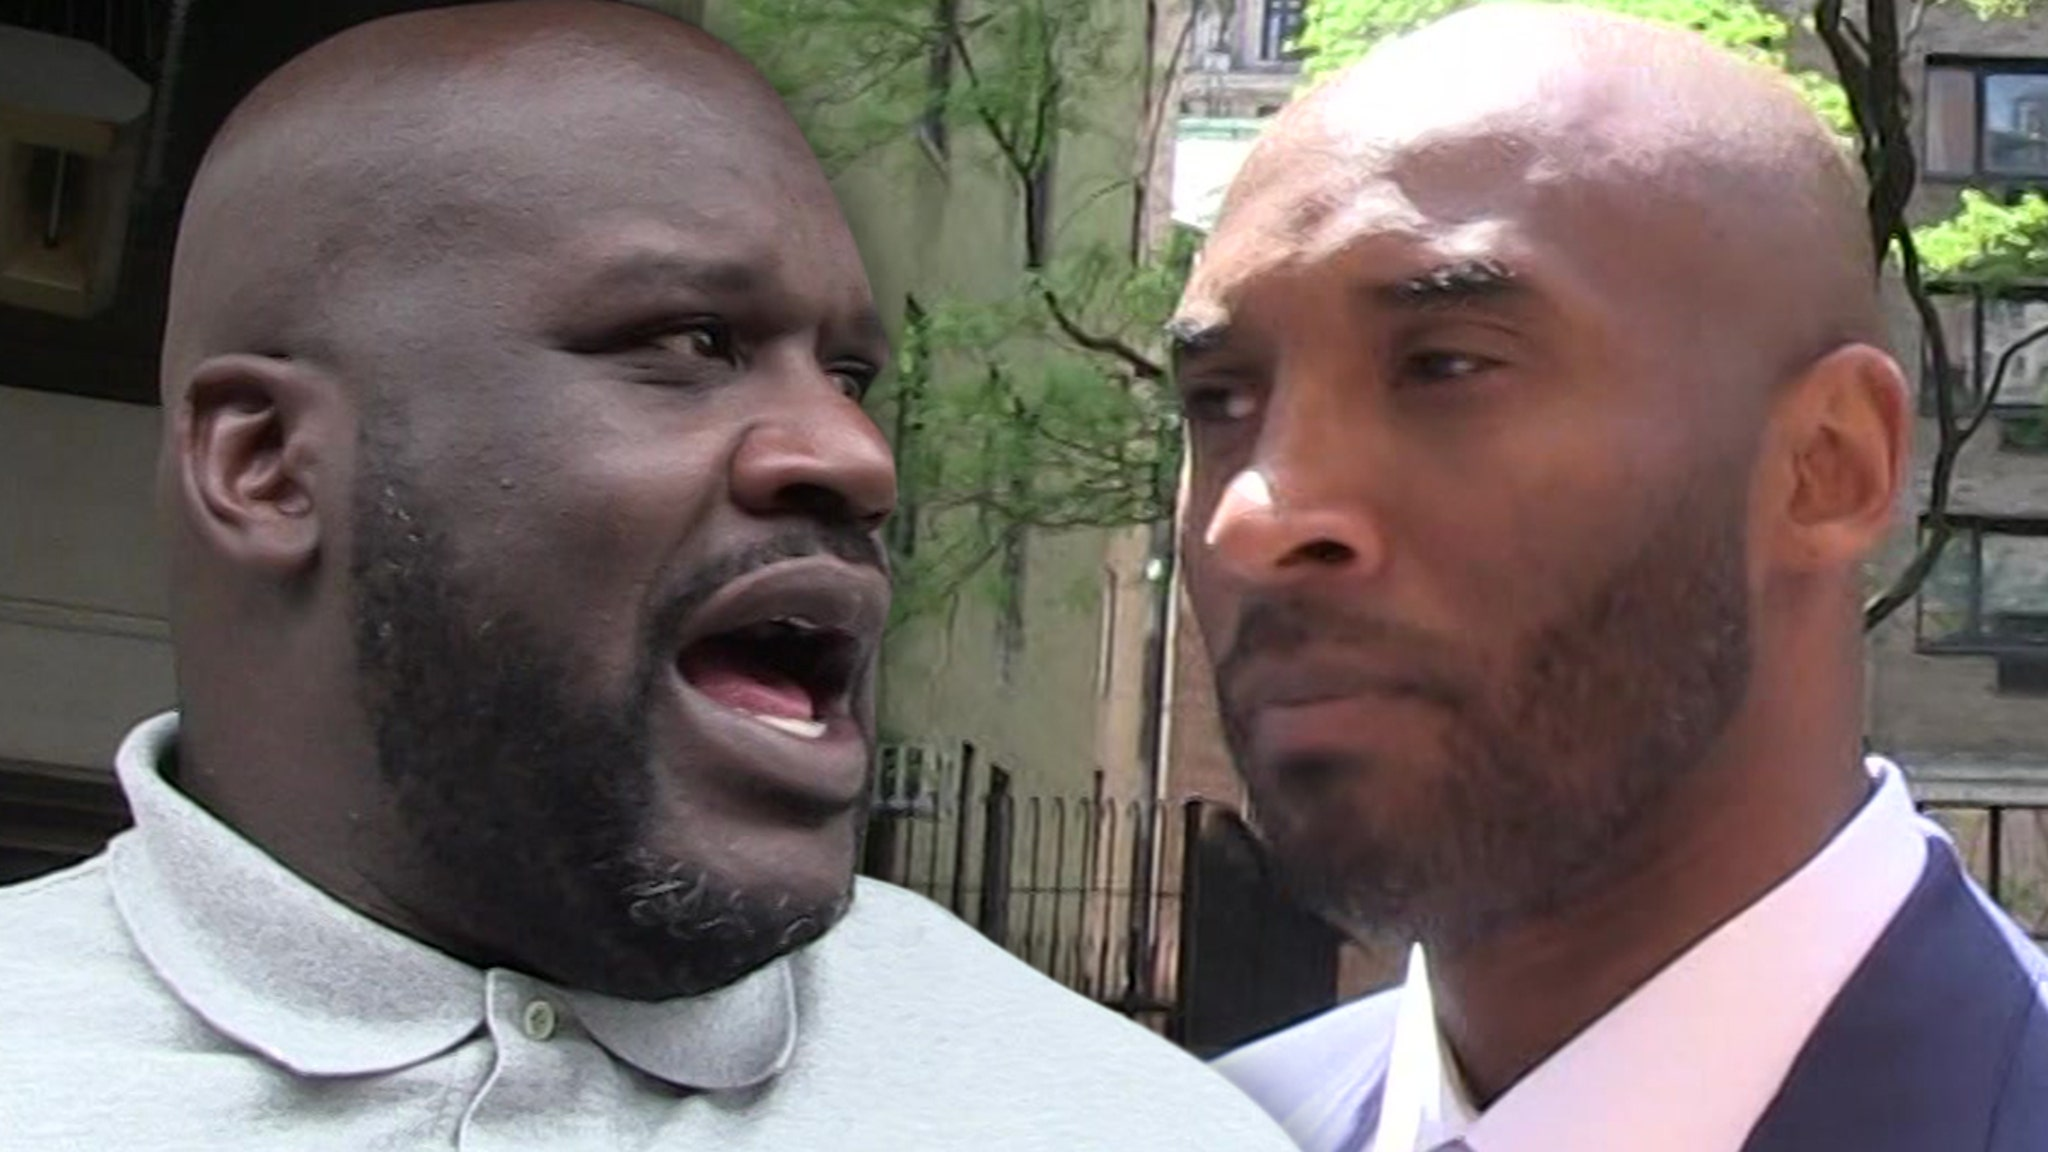 Shaq Rips Kobe's Lazy Comment, You'd Have 12 Rings If You Would've Passed